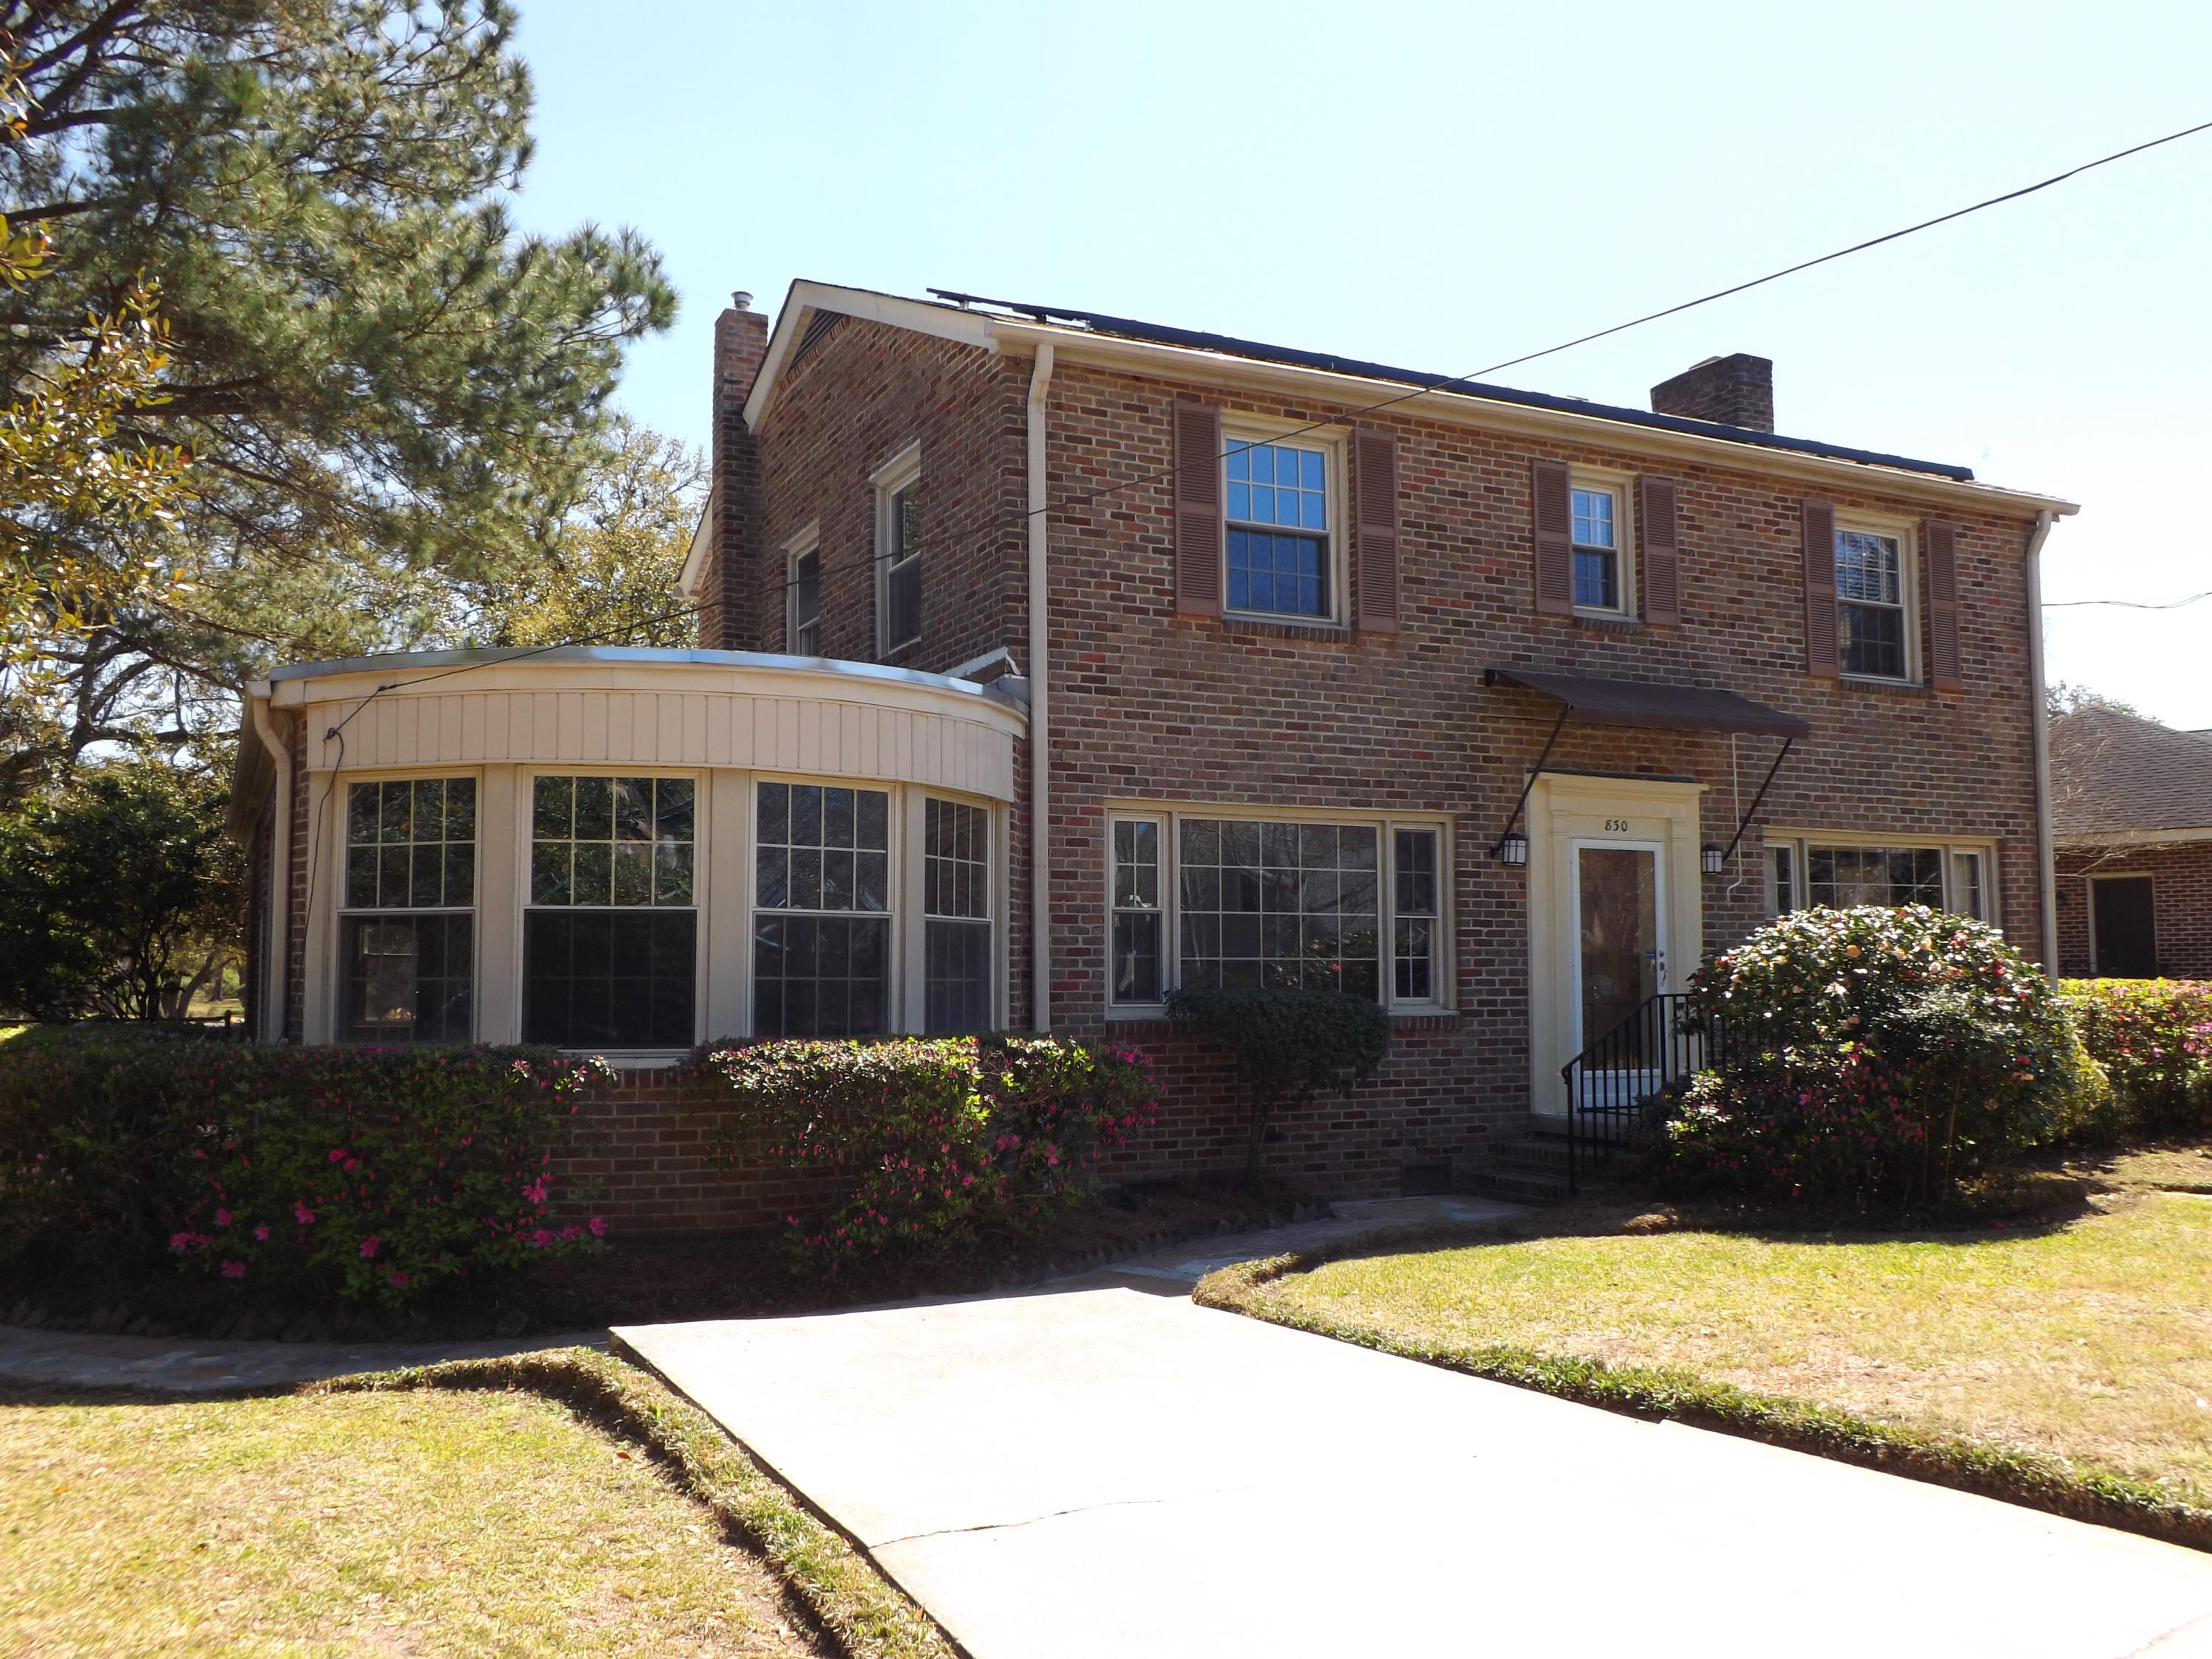 Photo of 830 Sheldon Rd, Charleston, SC 29407